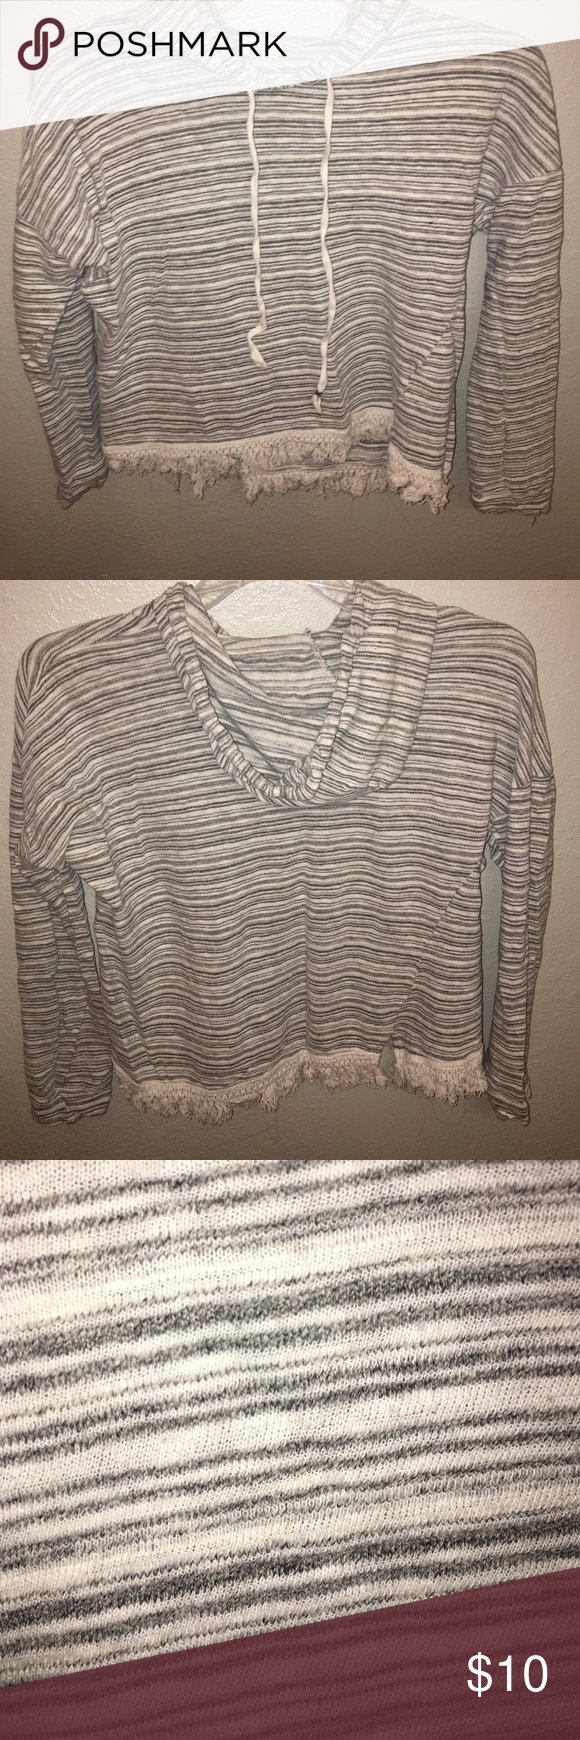 Spoiled sweater, size XL Spoiled sweater, size XL fits like M/L spoiled Sweaters Shrugs & Ponchos